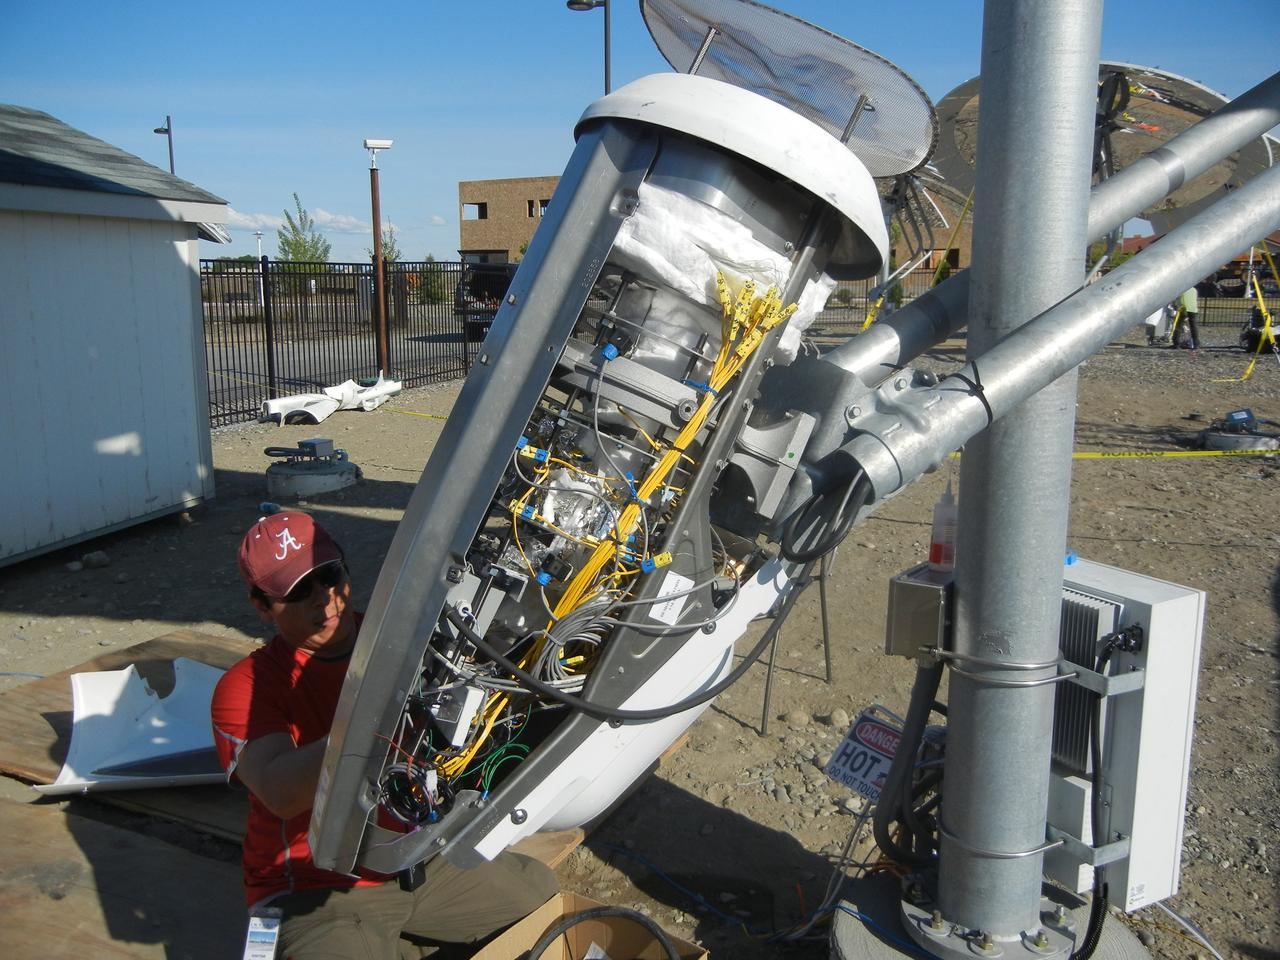 PNNL's thermochemical conversion device installed in front of a solar dish